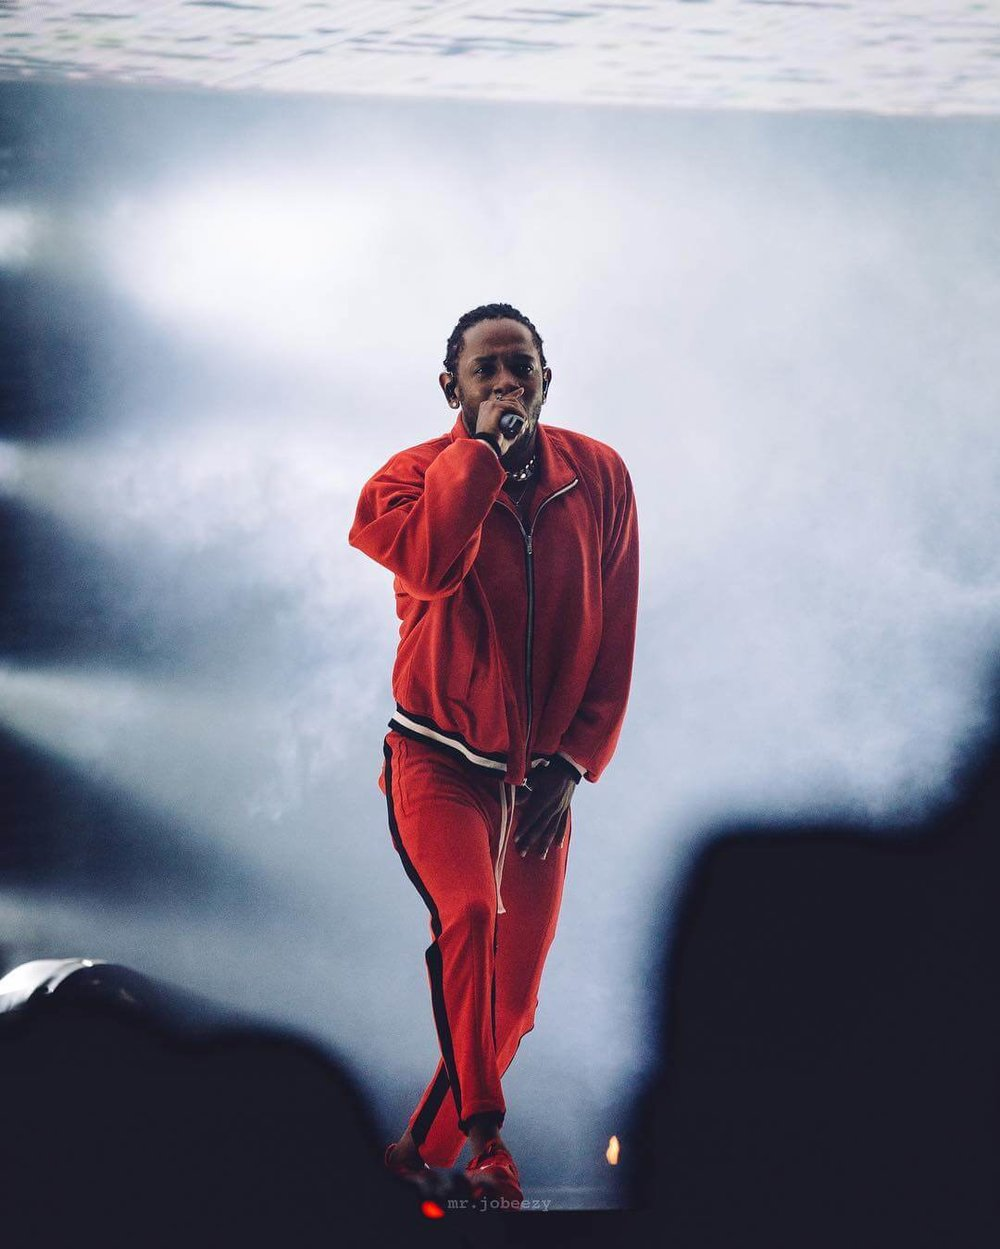 mrjobeezy-kendrick-lamar-counter-culture-agency-canadian-influencer-agency-marketing.jpg